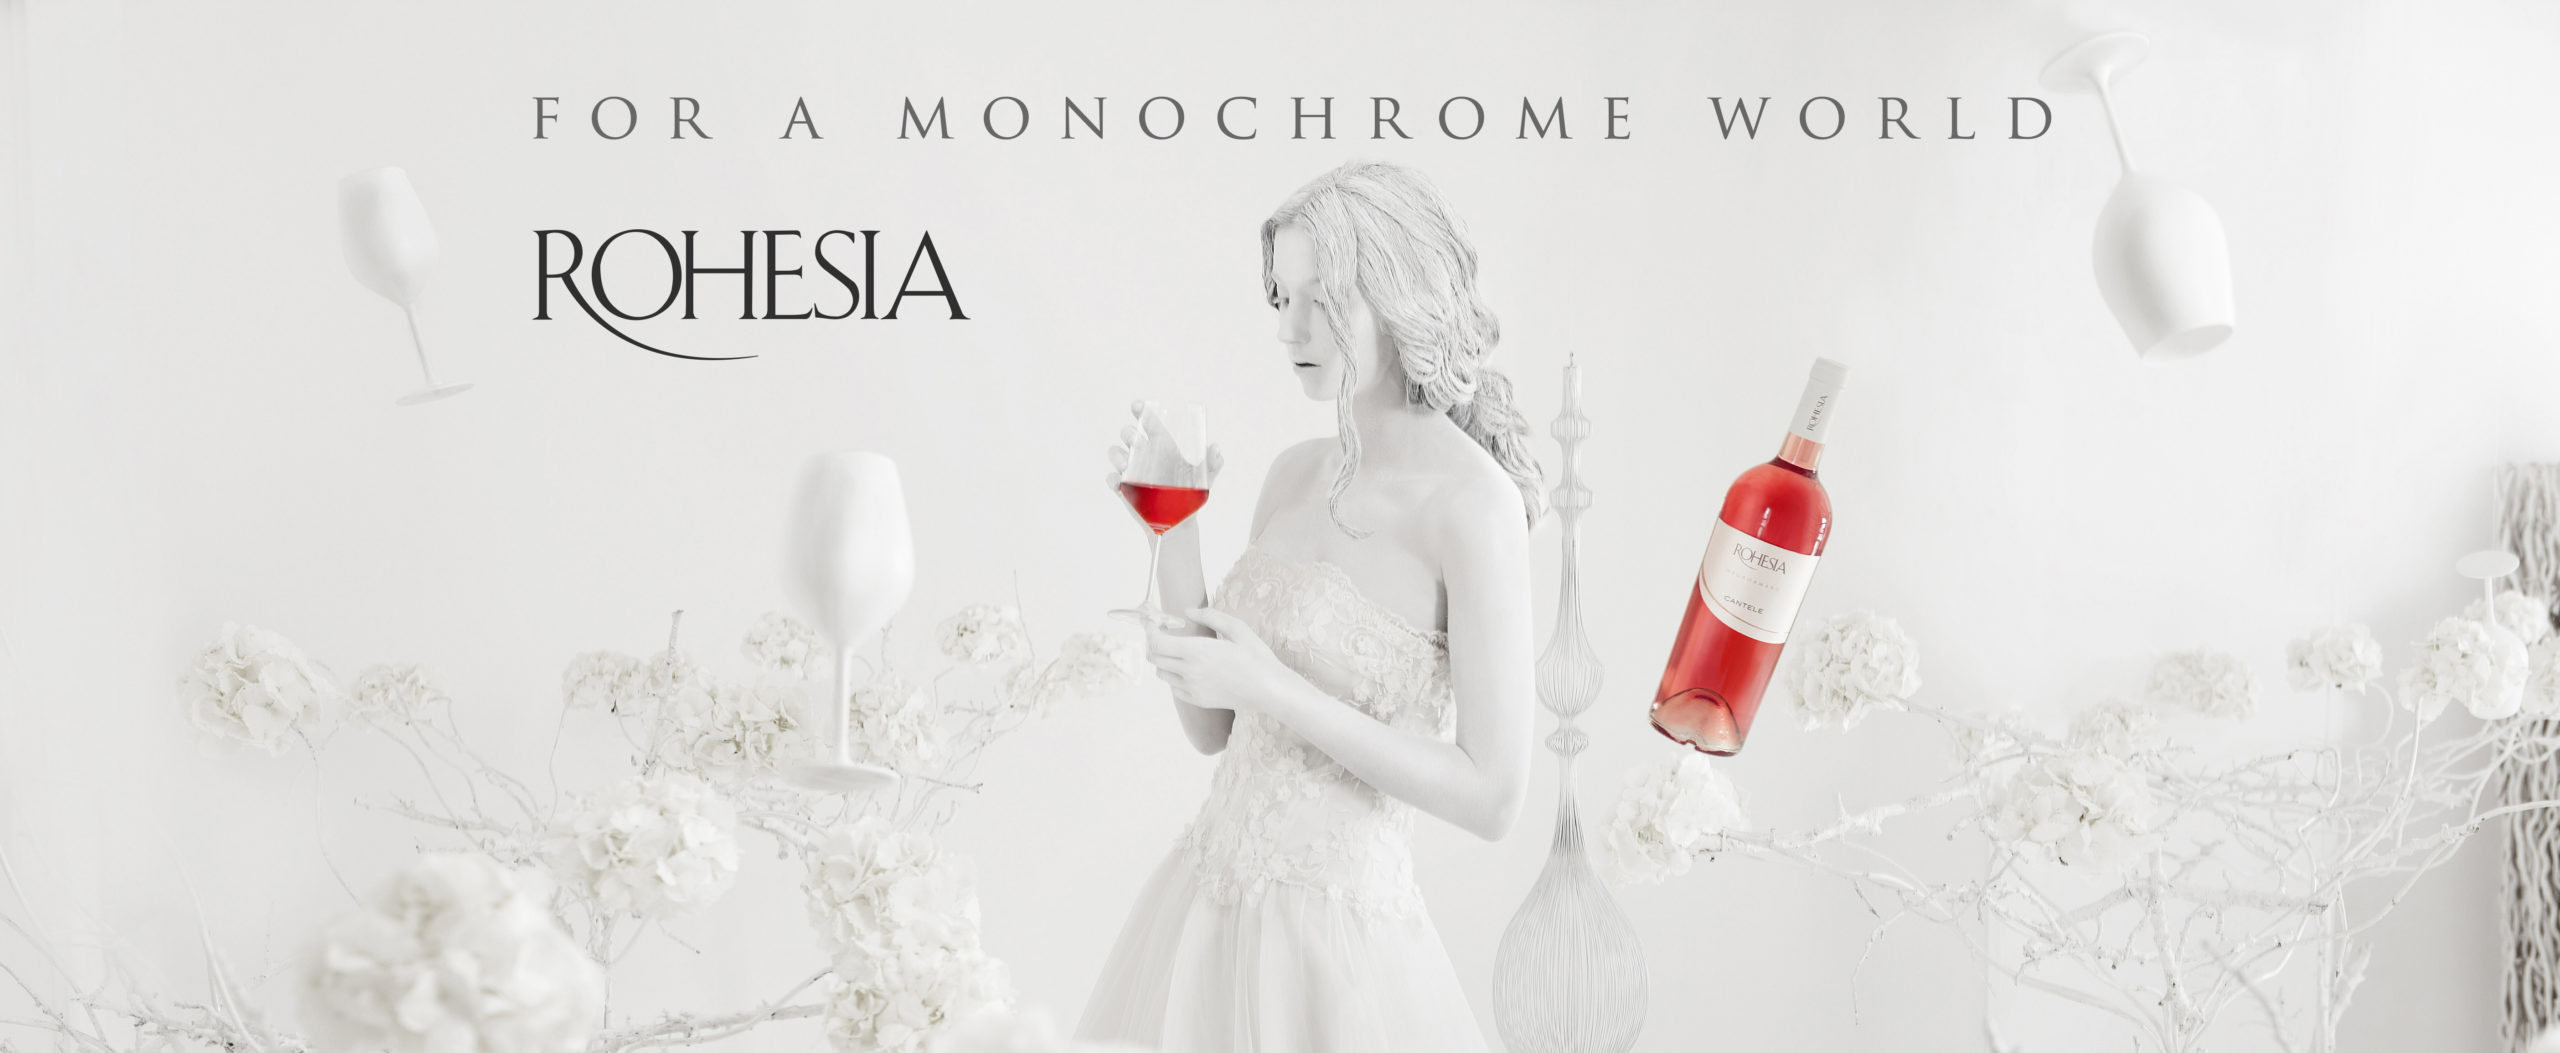 Rohesia: rosè without compromise